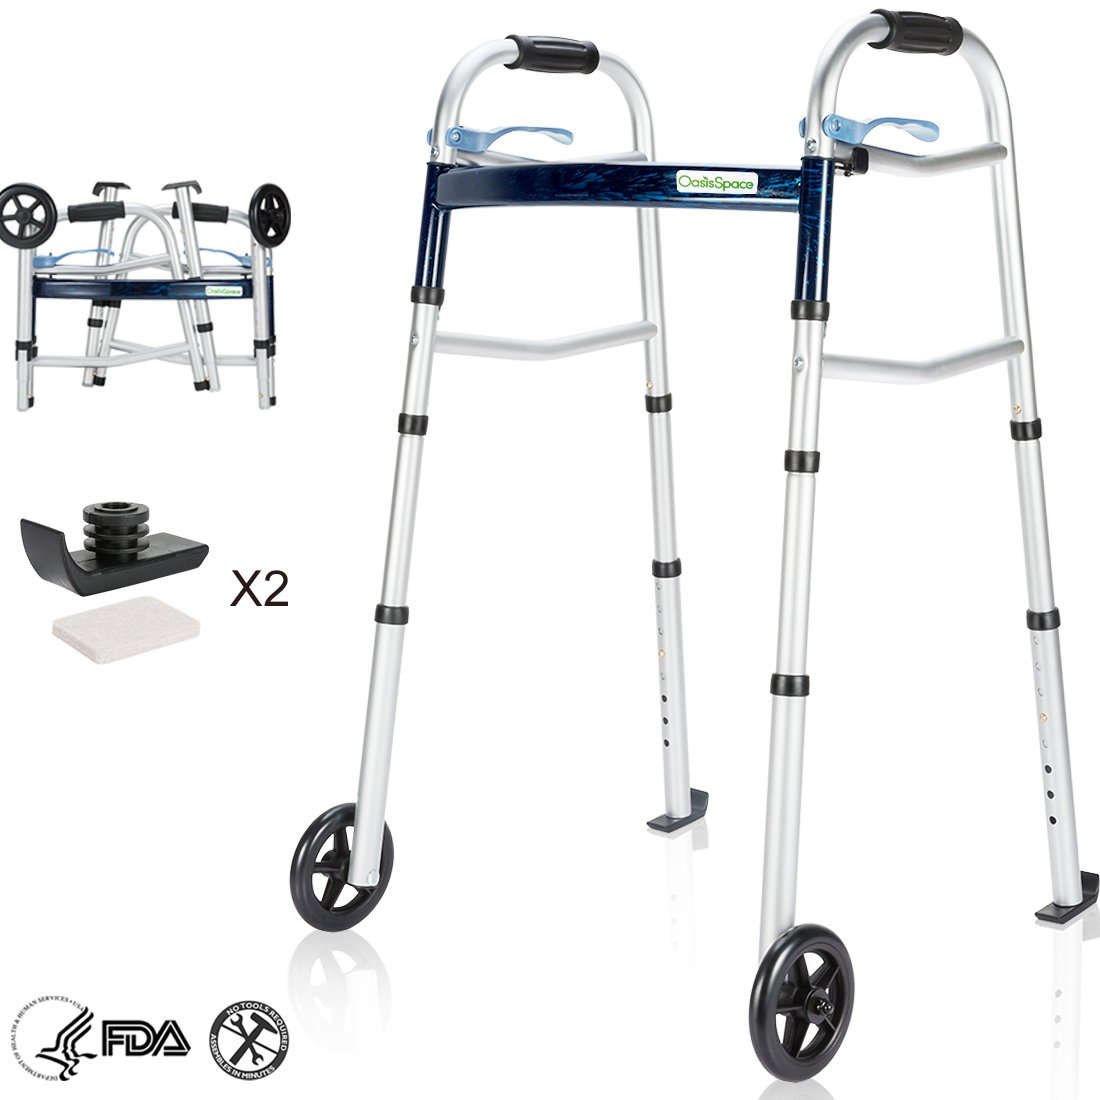 OasisSpace Compact Folding Walker, with Trigger Release and 5 Inches Wheels for The Seniors [Accessories Included] Narrow Lightweight Supports up to 350 lb by OasisSpace